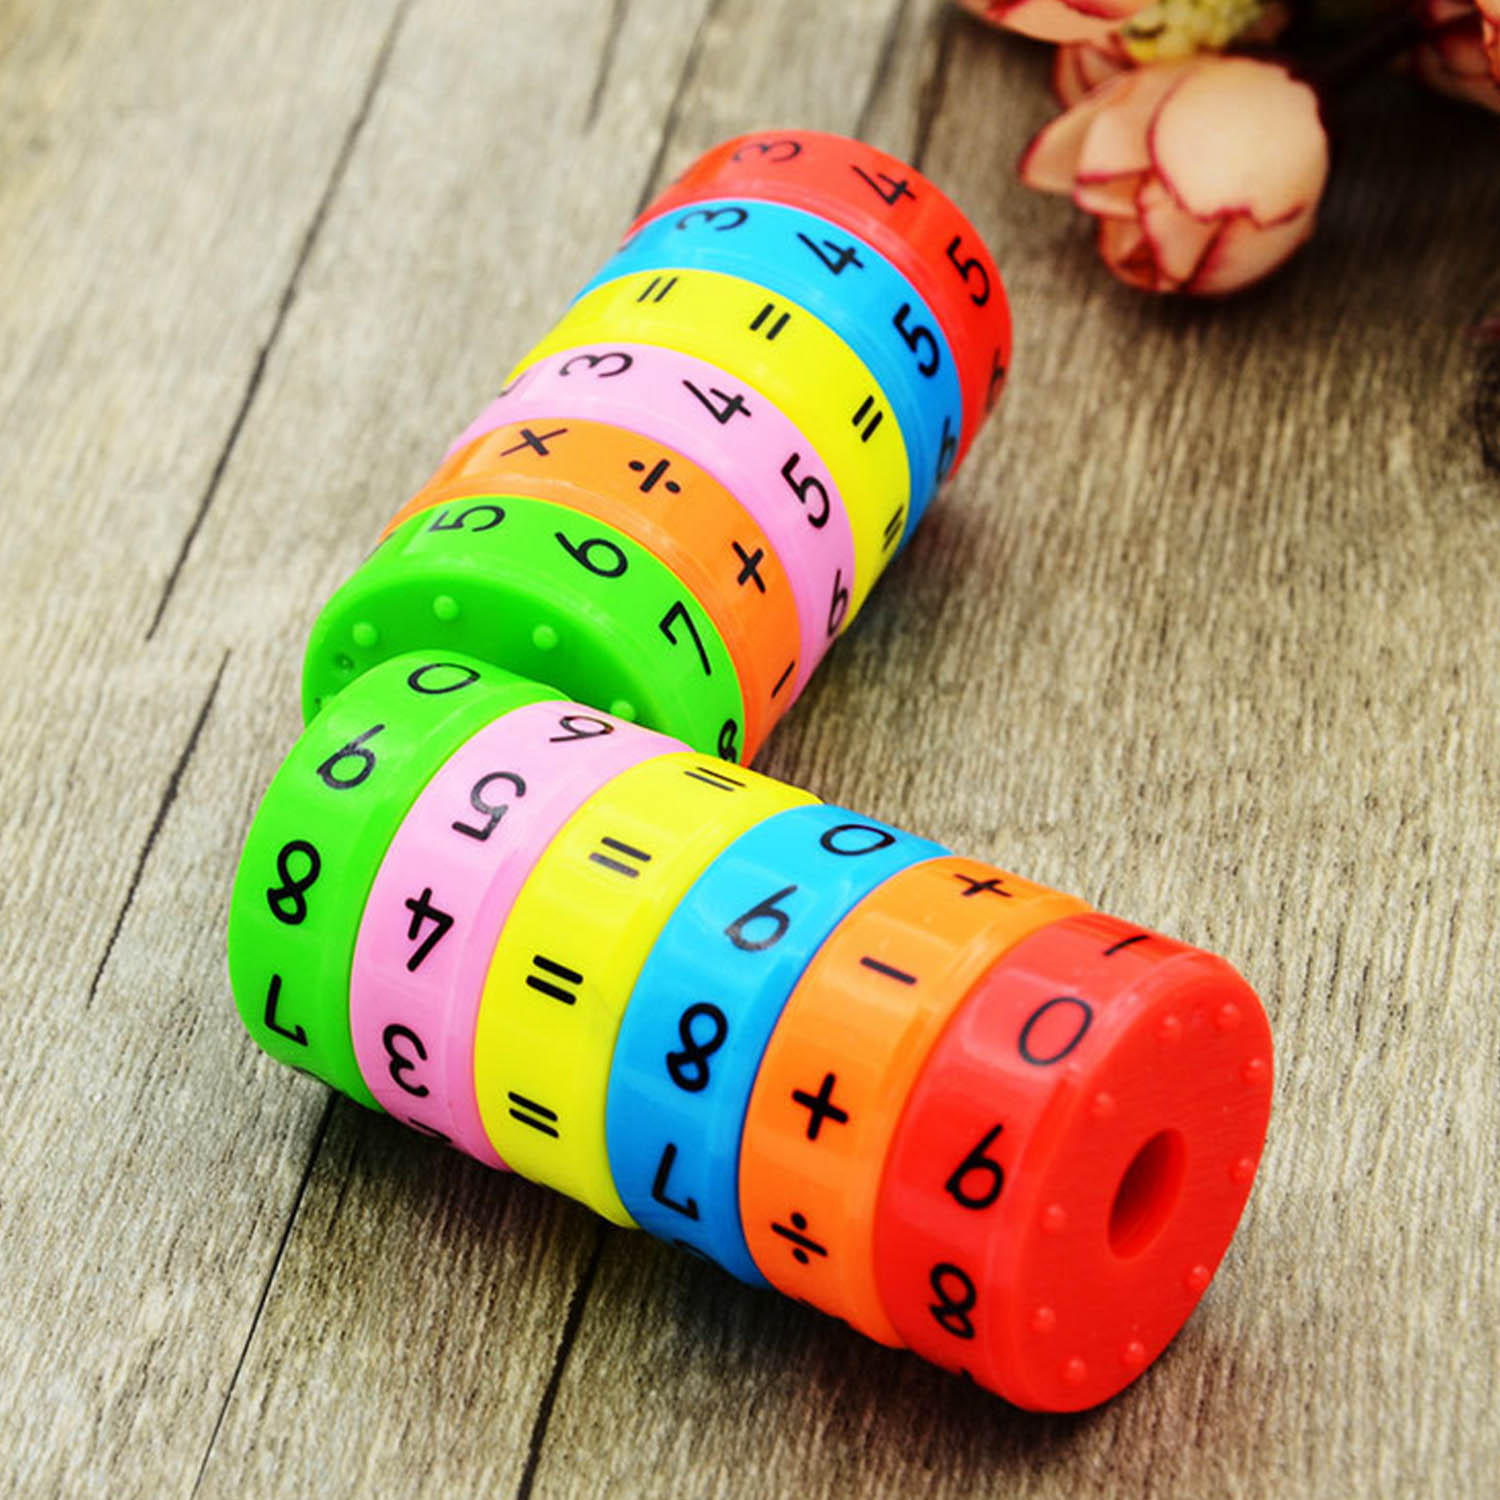 Kids Colorful Magnetic Math Cube Toy Mathematics Arithmetic Math Puzzle Cube Add Subtract Multiply Divide Education Learning Toy